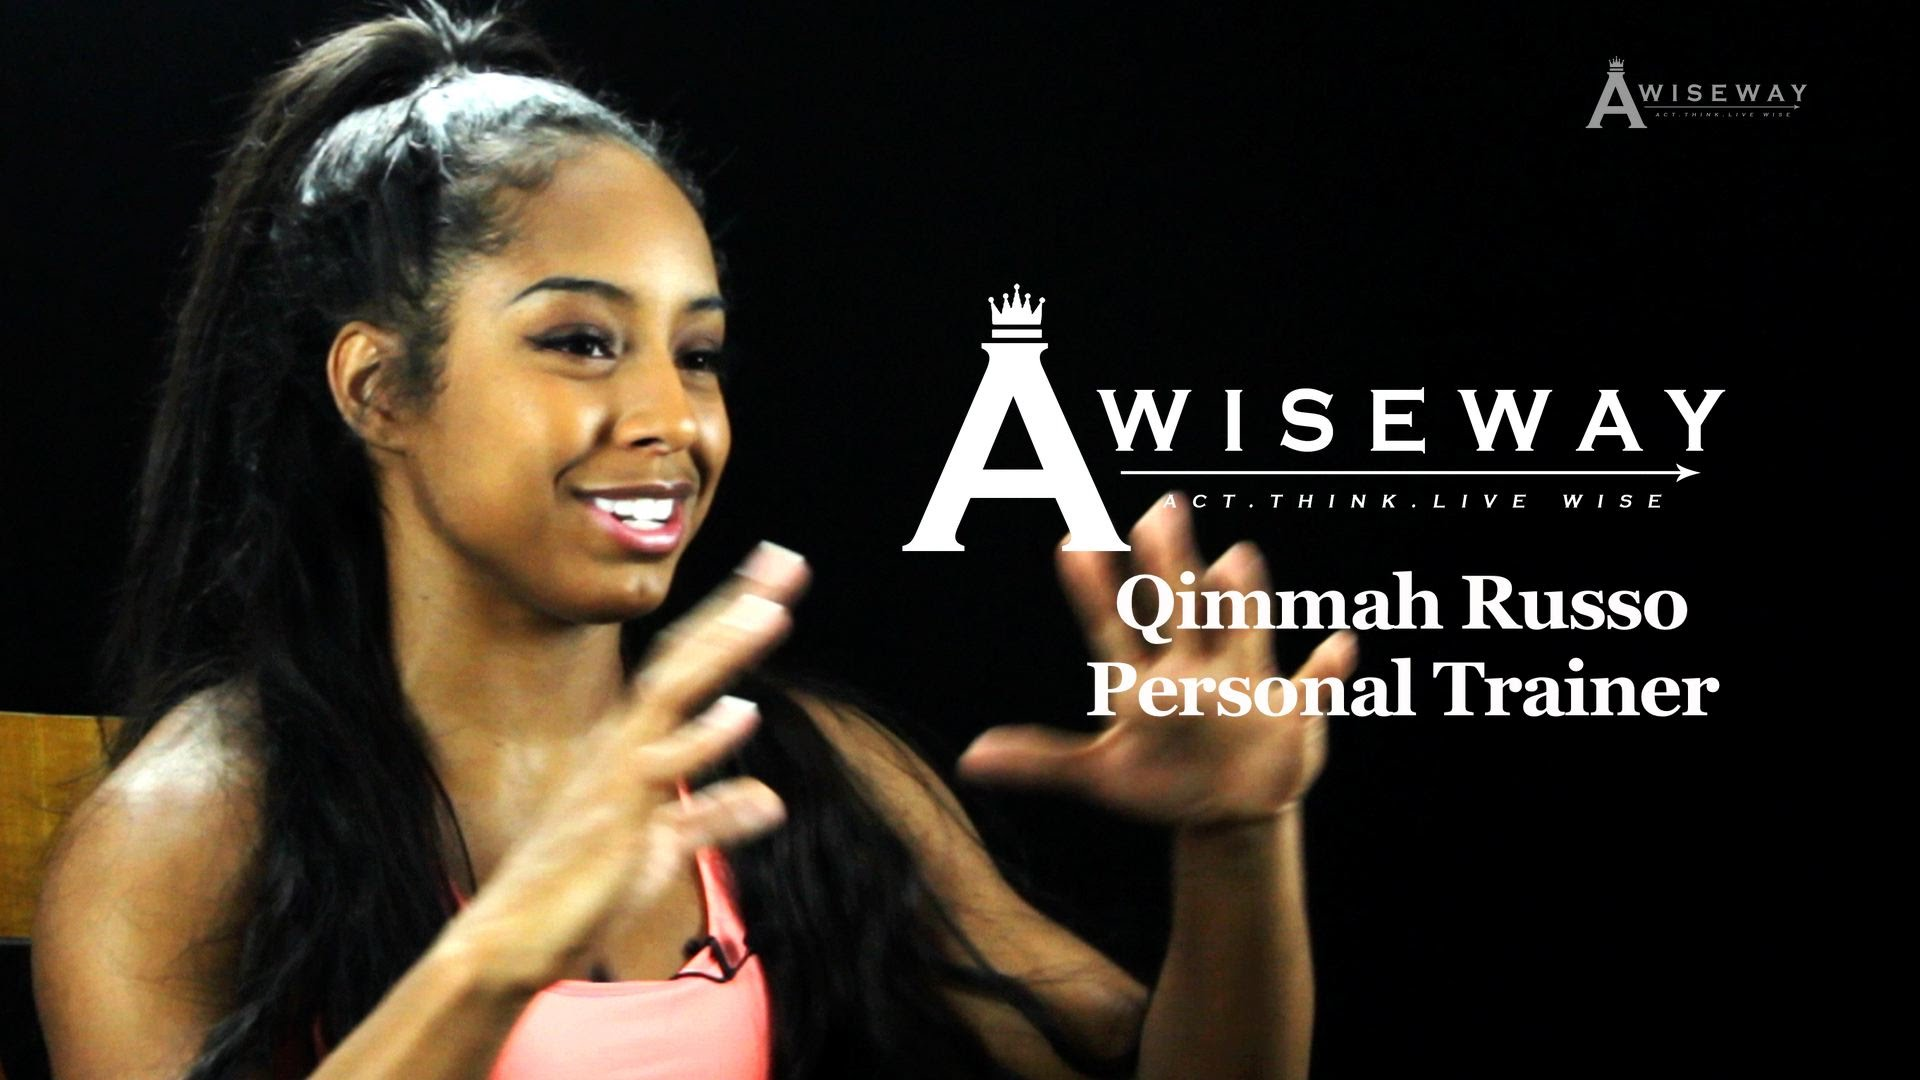 Qimmah Russo Explains How Her Healthy Lifestyle Influenced Others